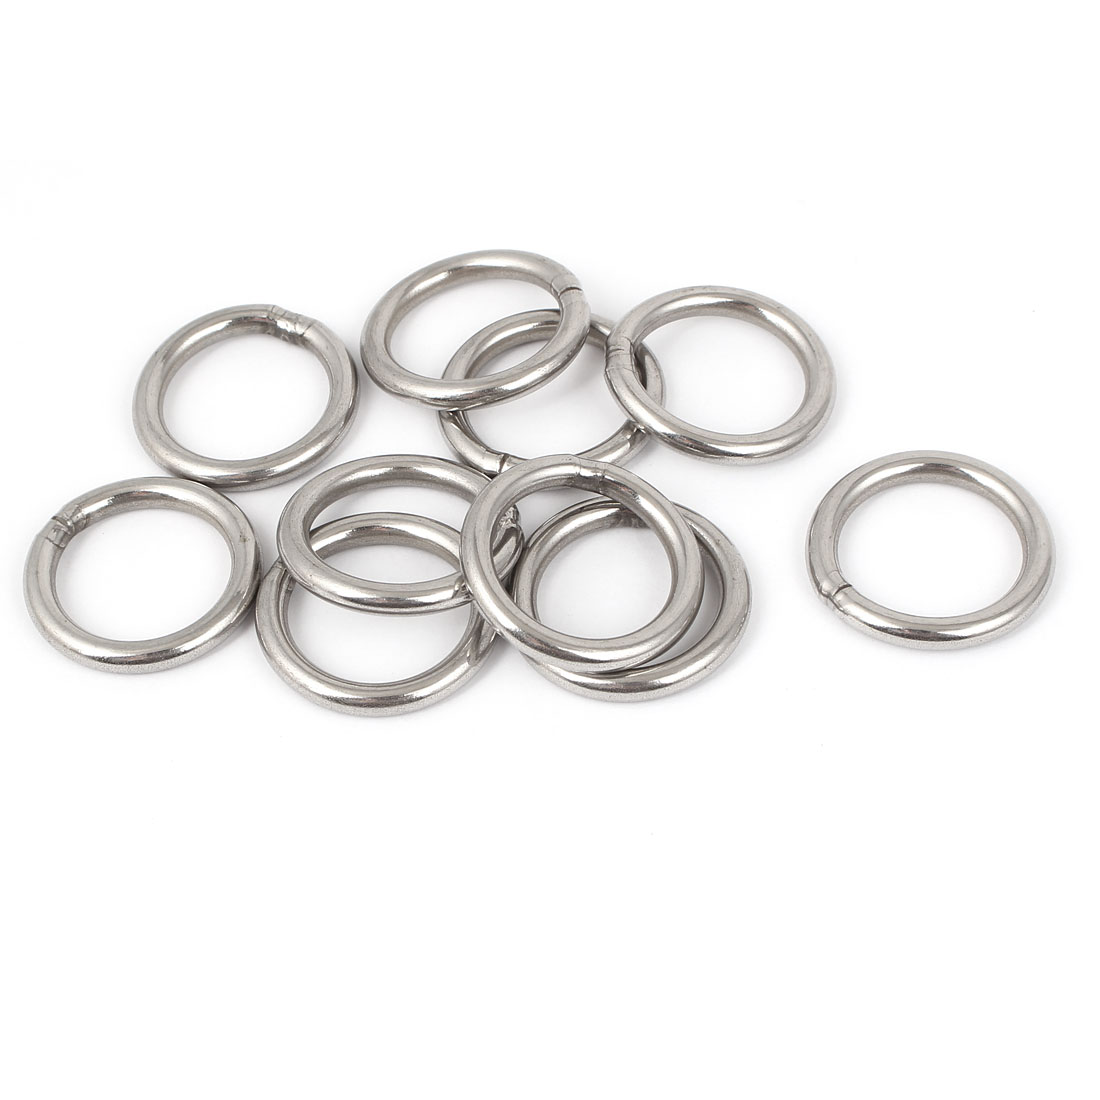 M4 x 30mm 201 Stainless Steel Webbing Strapping Welded Round O Rings 10 Pcs